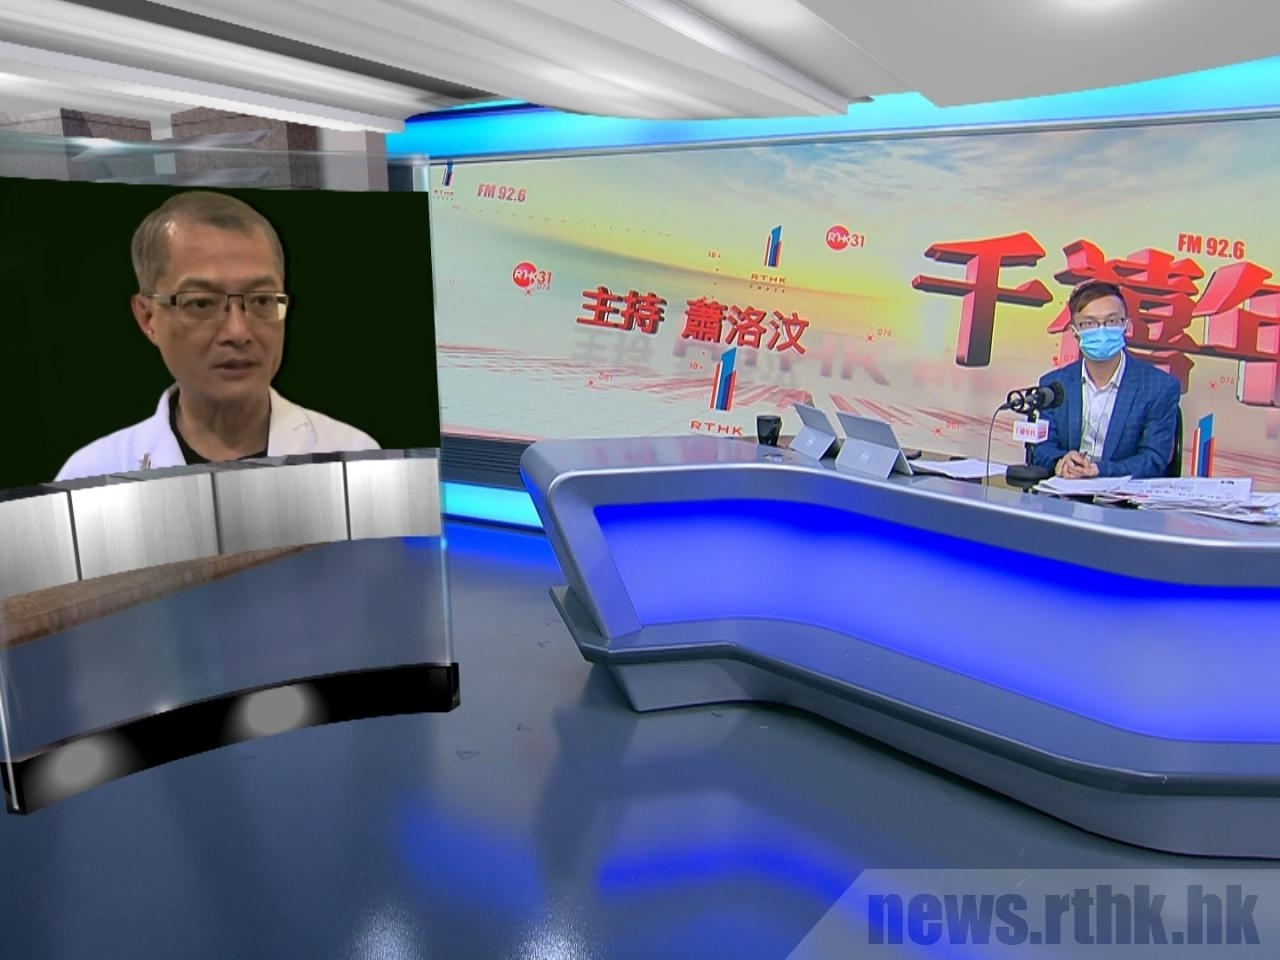 The head of the HKU Shenzhen Hospital, Lo Chung-mau, says his hospital will soon be able to inoculate 2,000 people a day. Photo: RTHK